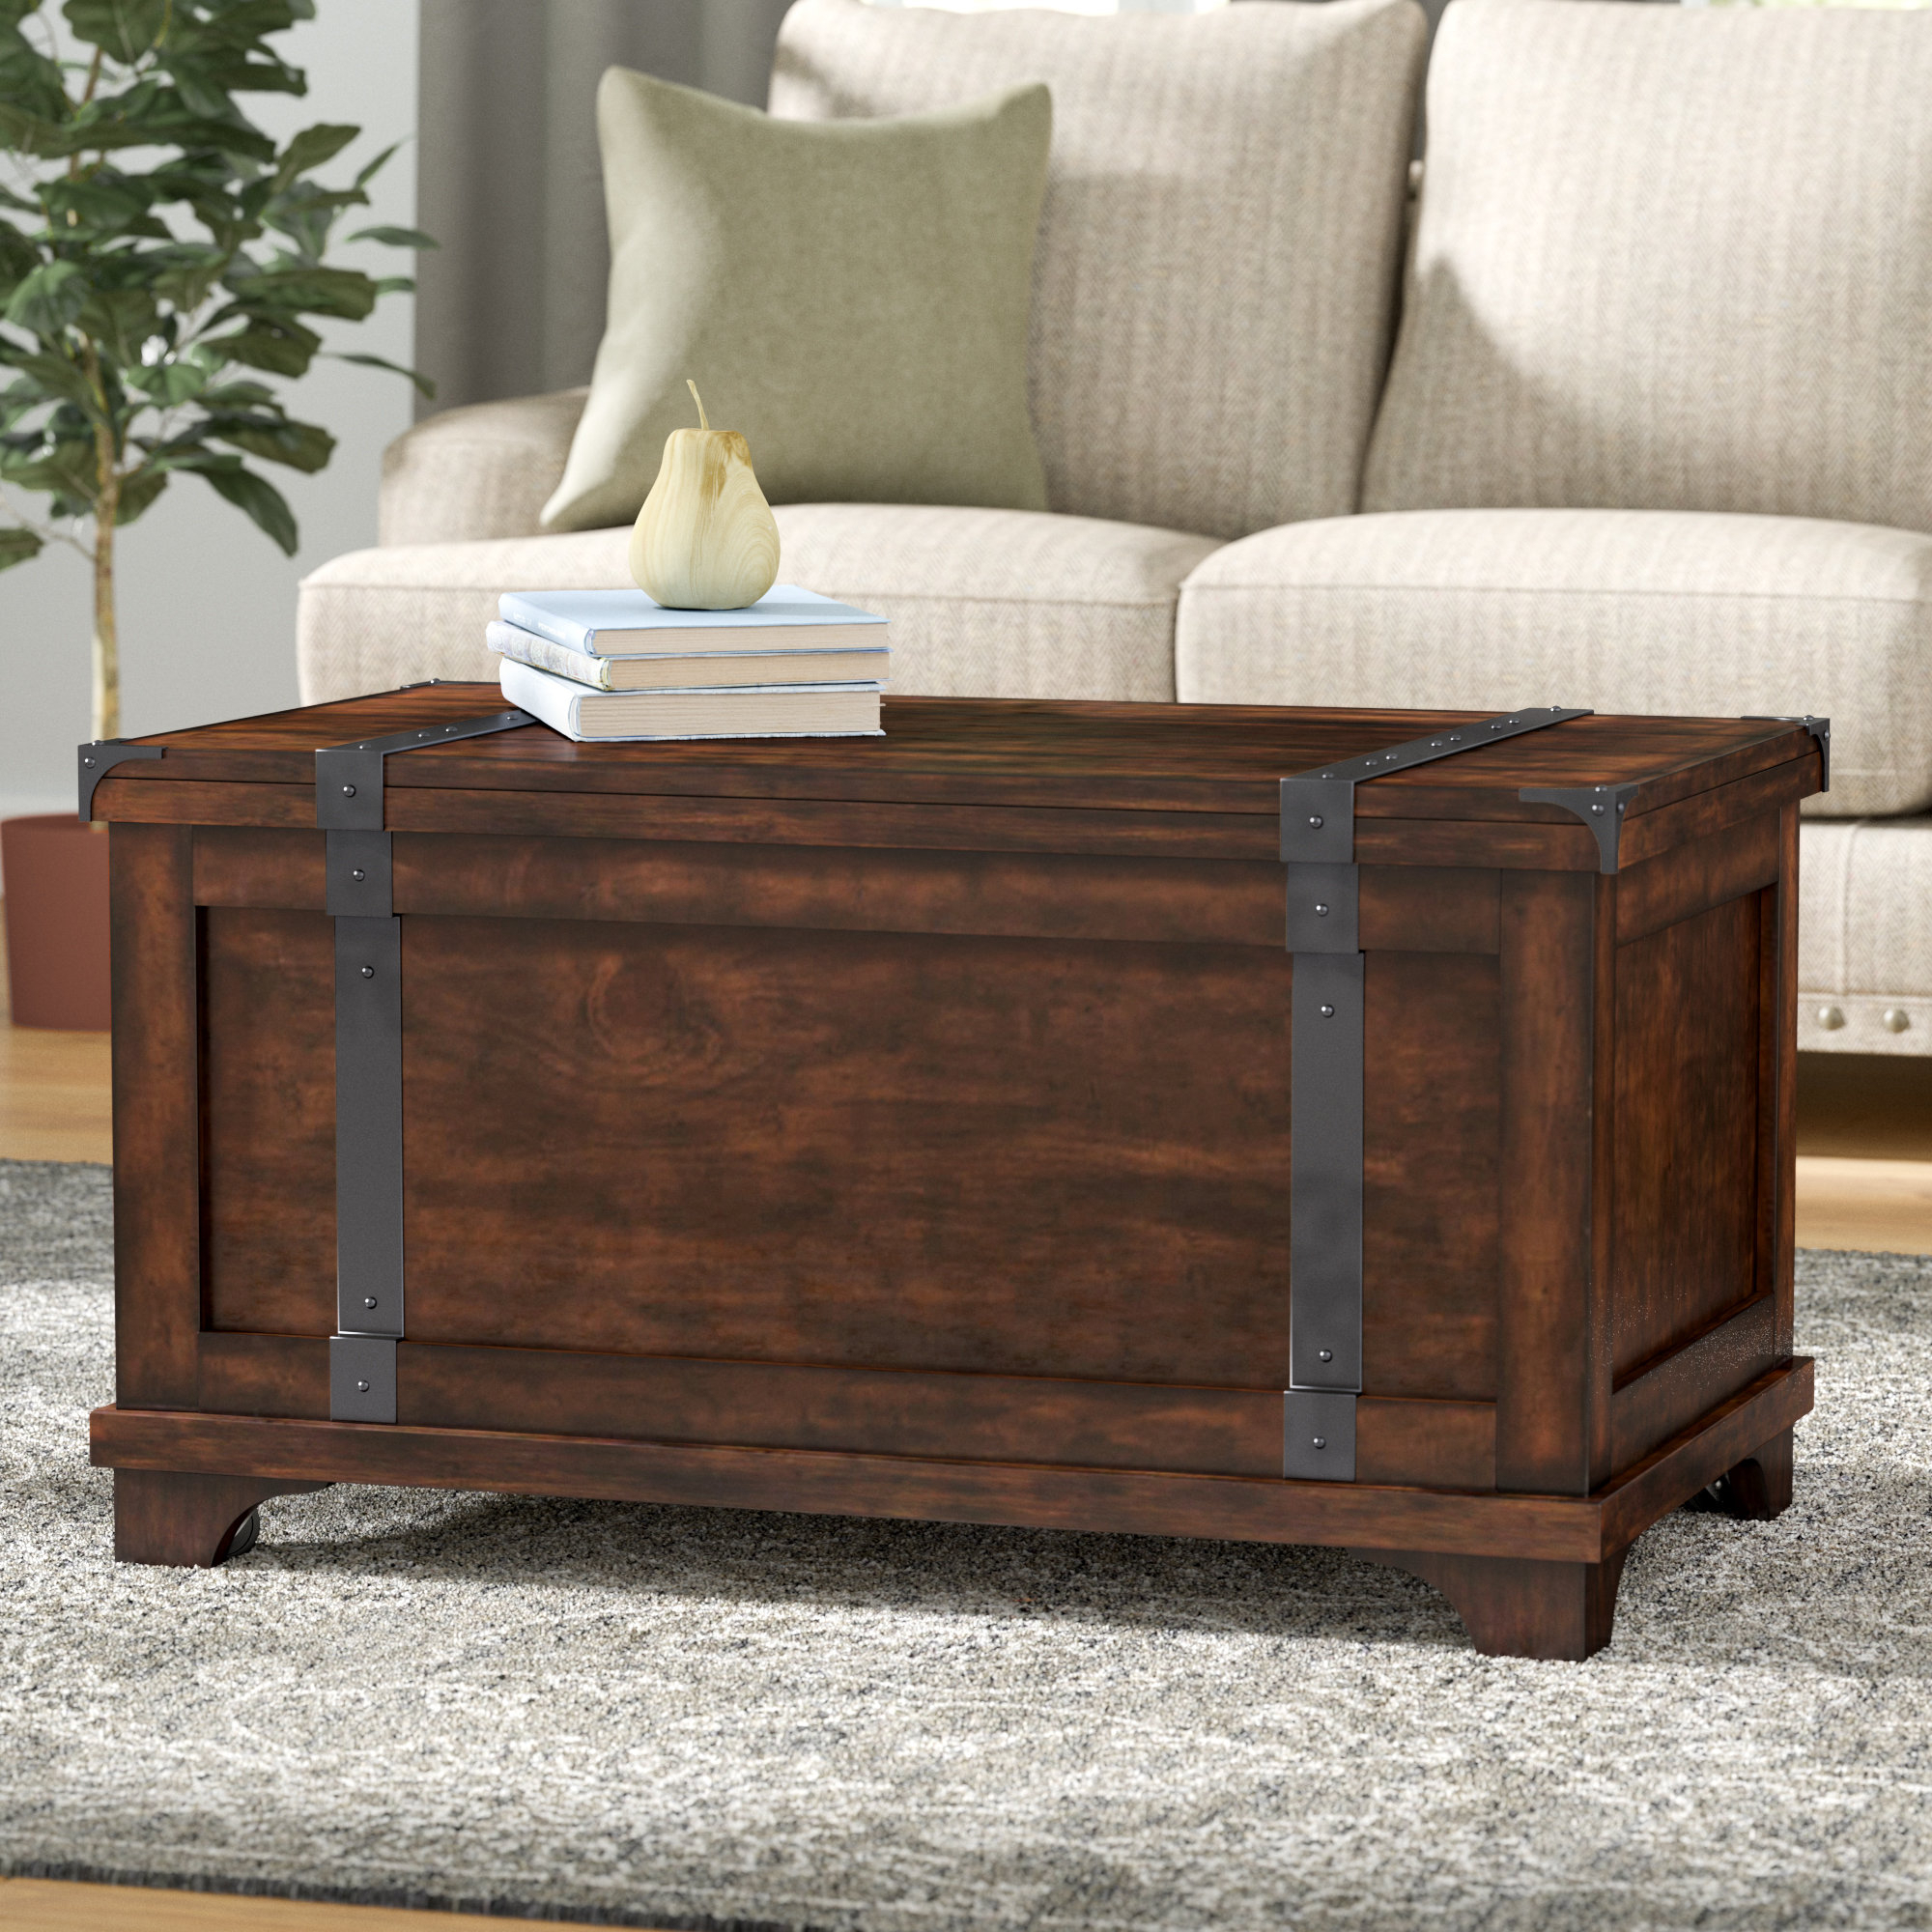 Toy Chest Coffee Table | Wayfair Inside Summer Desire Credenzas (View 25 of 30)